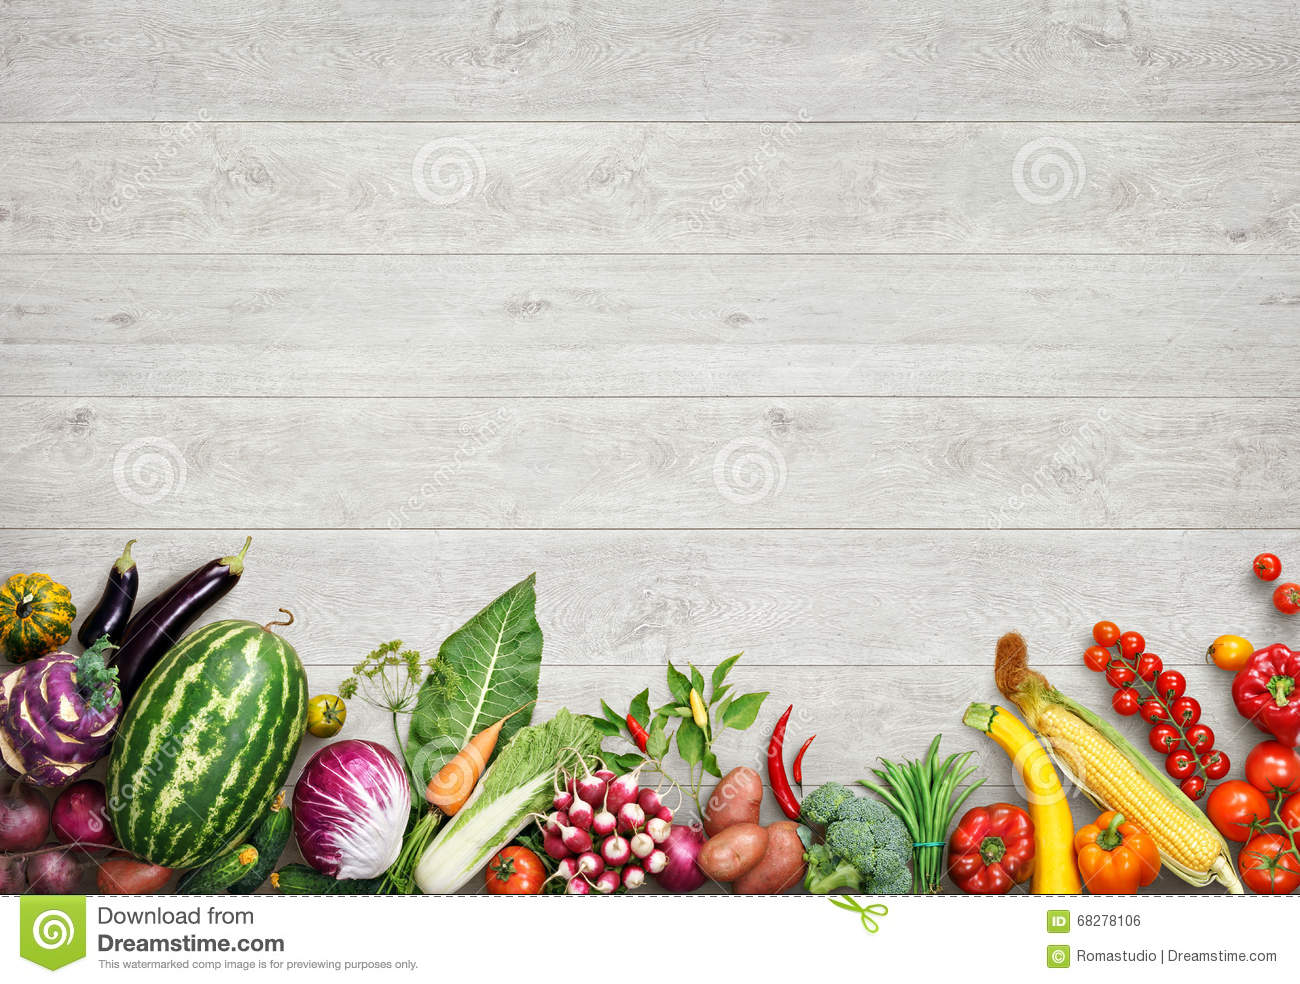 Food Background Organic Food Backgroundstudio Photo Of Different Fruits And